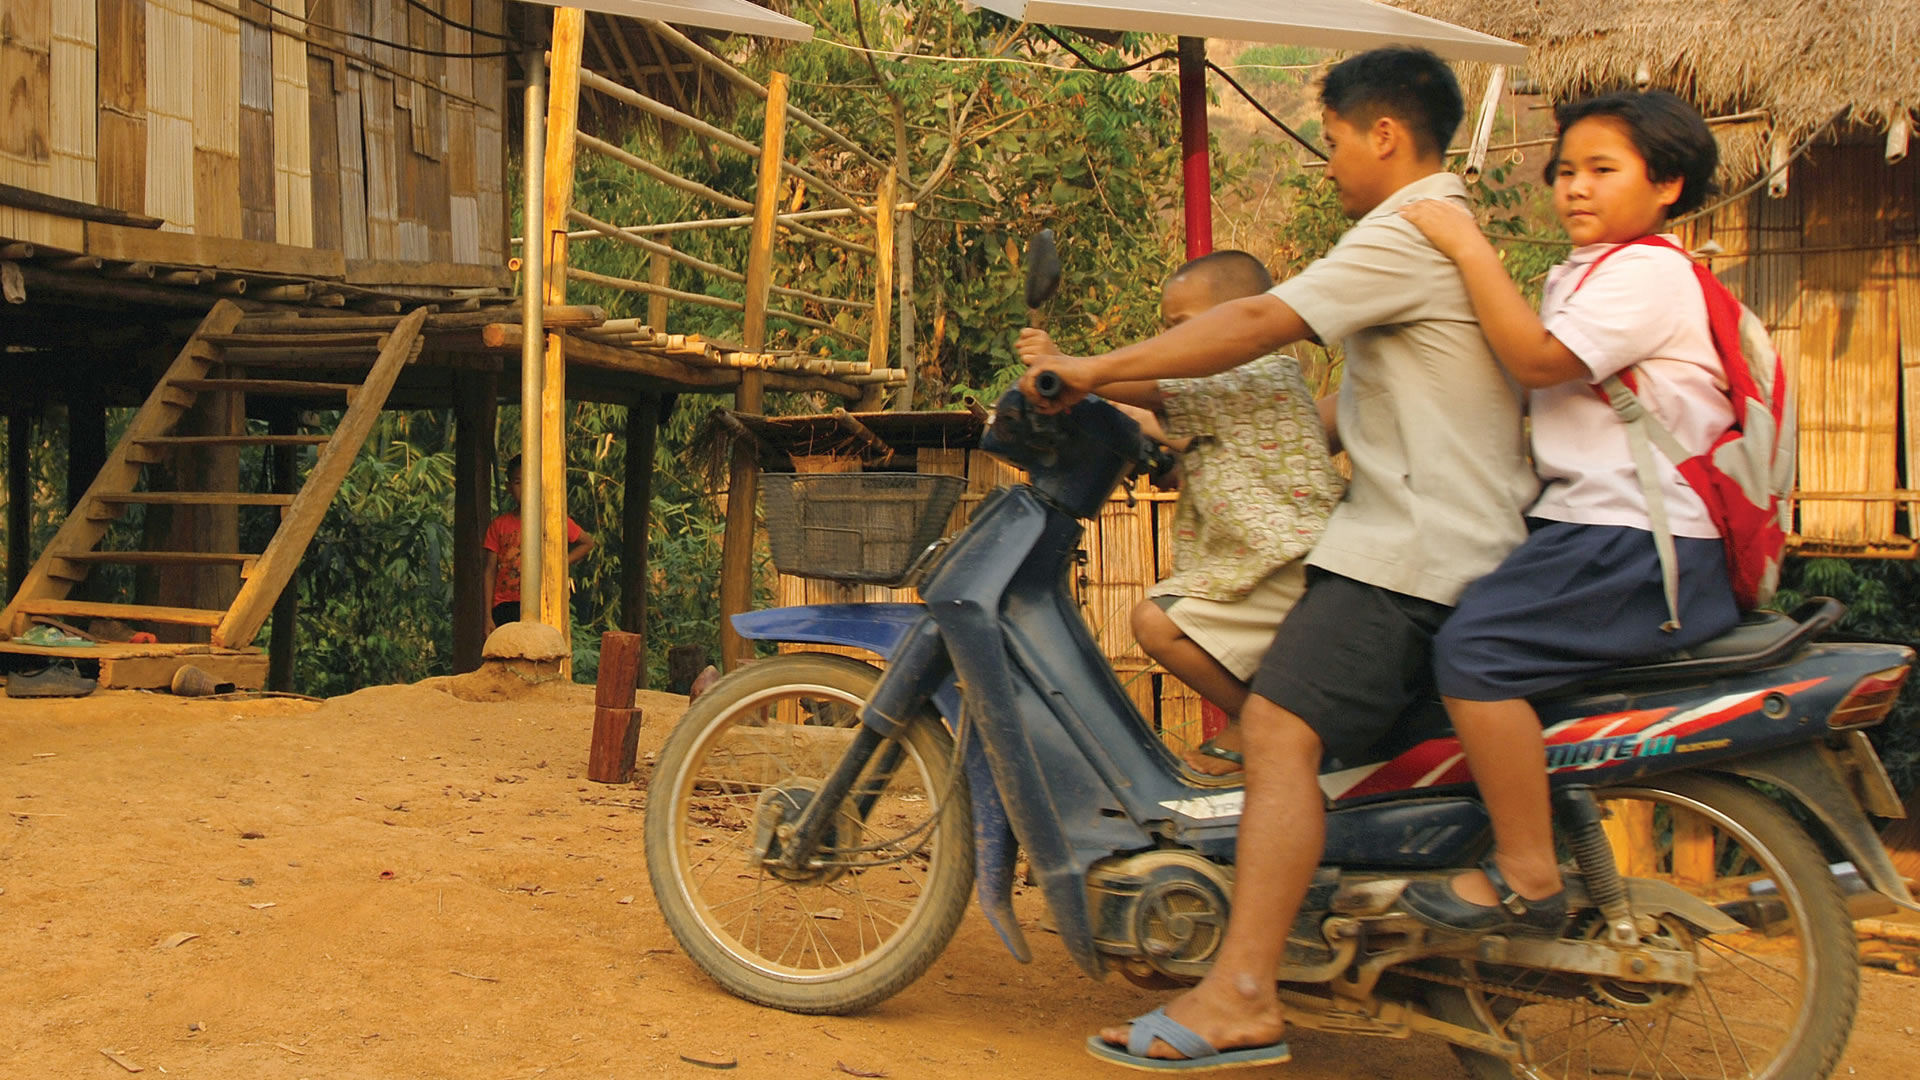 Piyaporn rides a motorcycle with her father